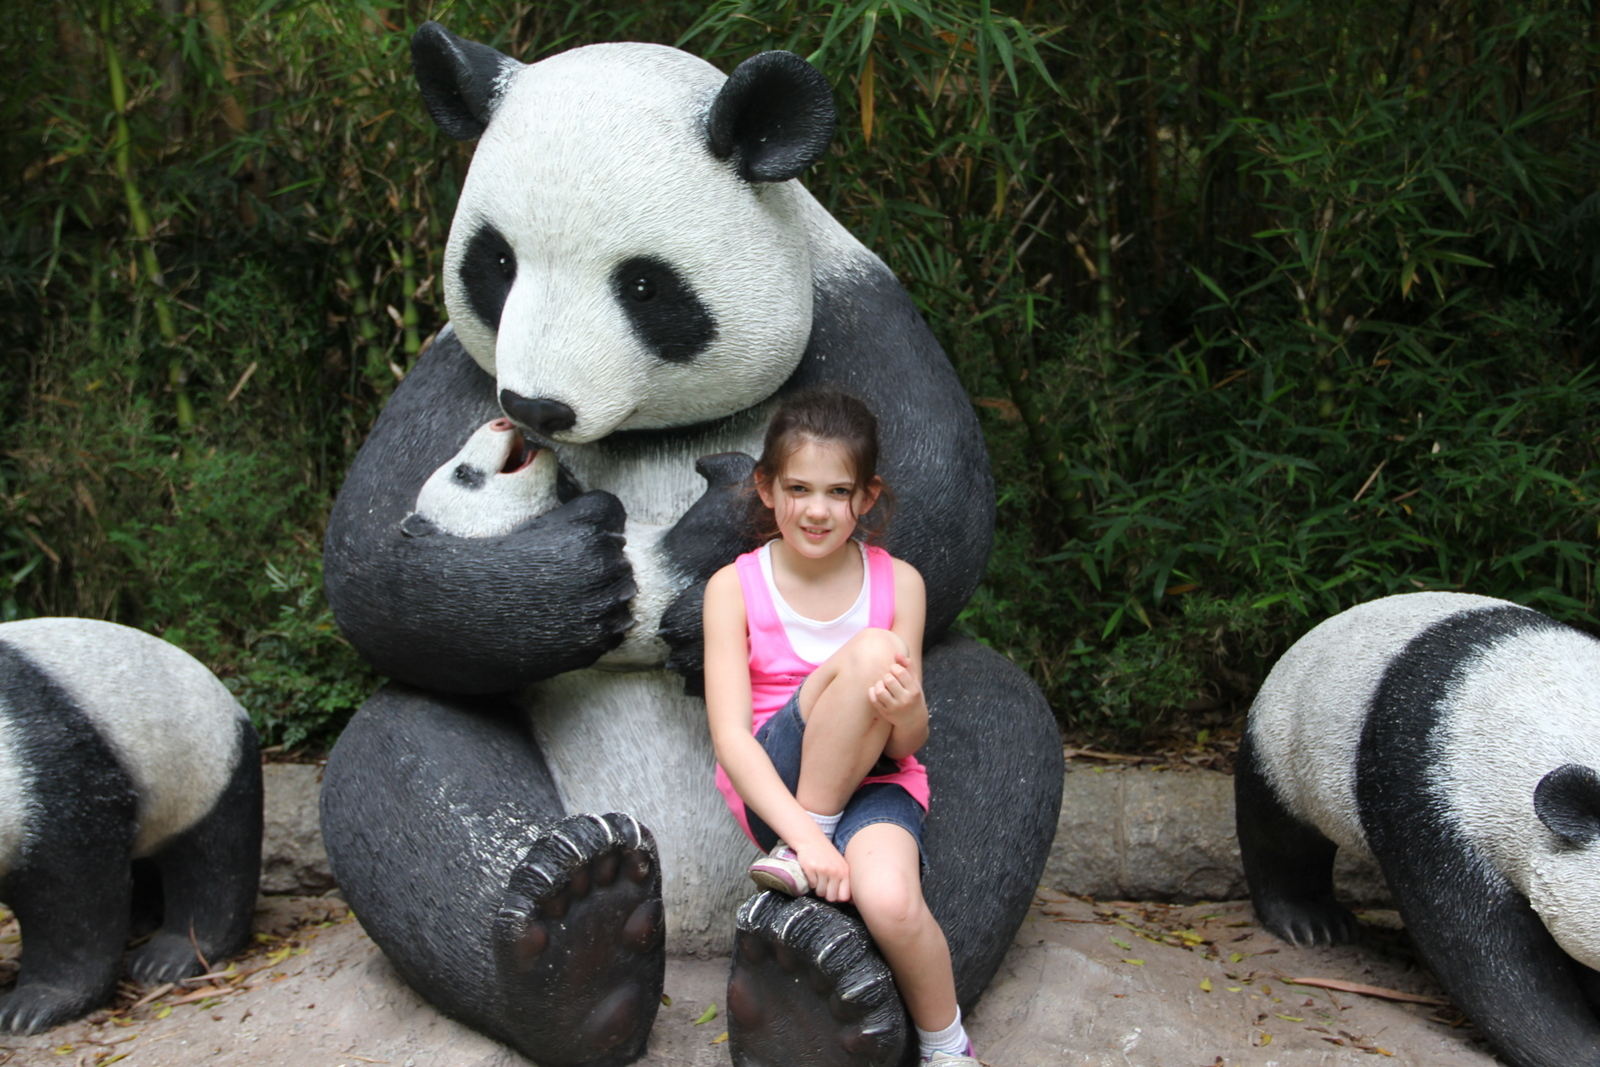 Entering the Panda land. This was one of the highlights too!